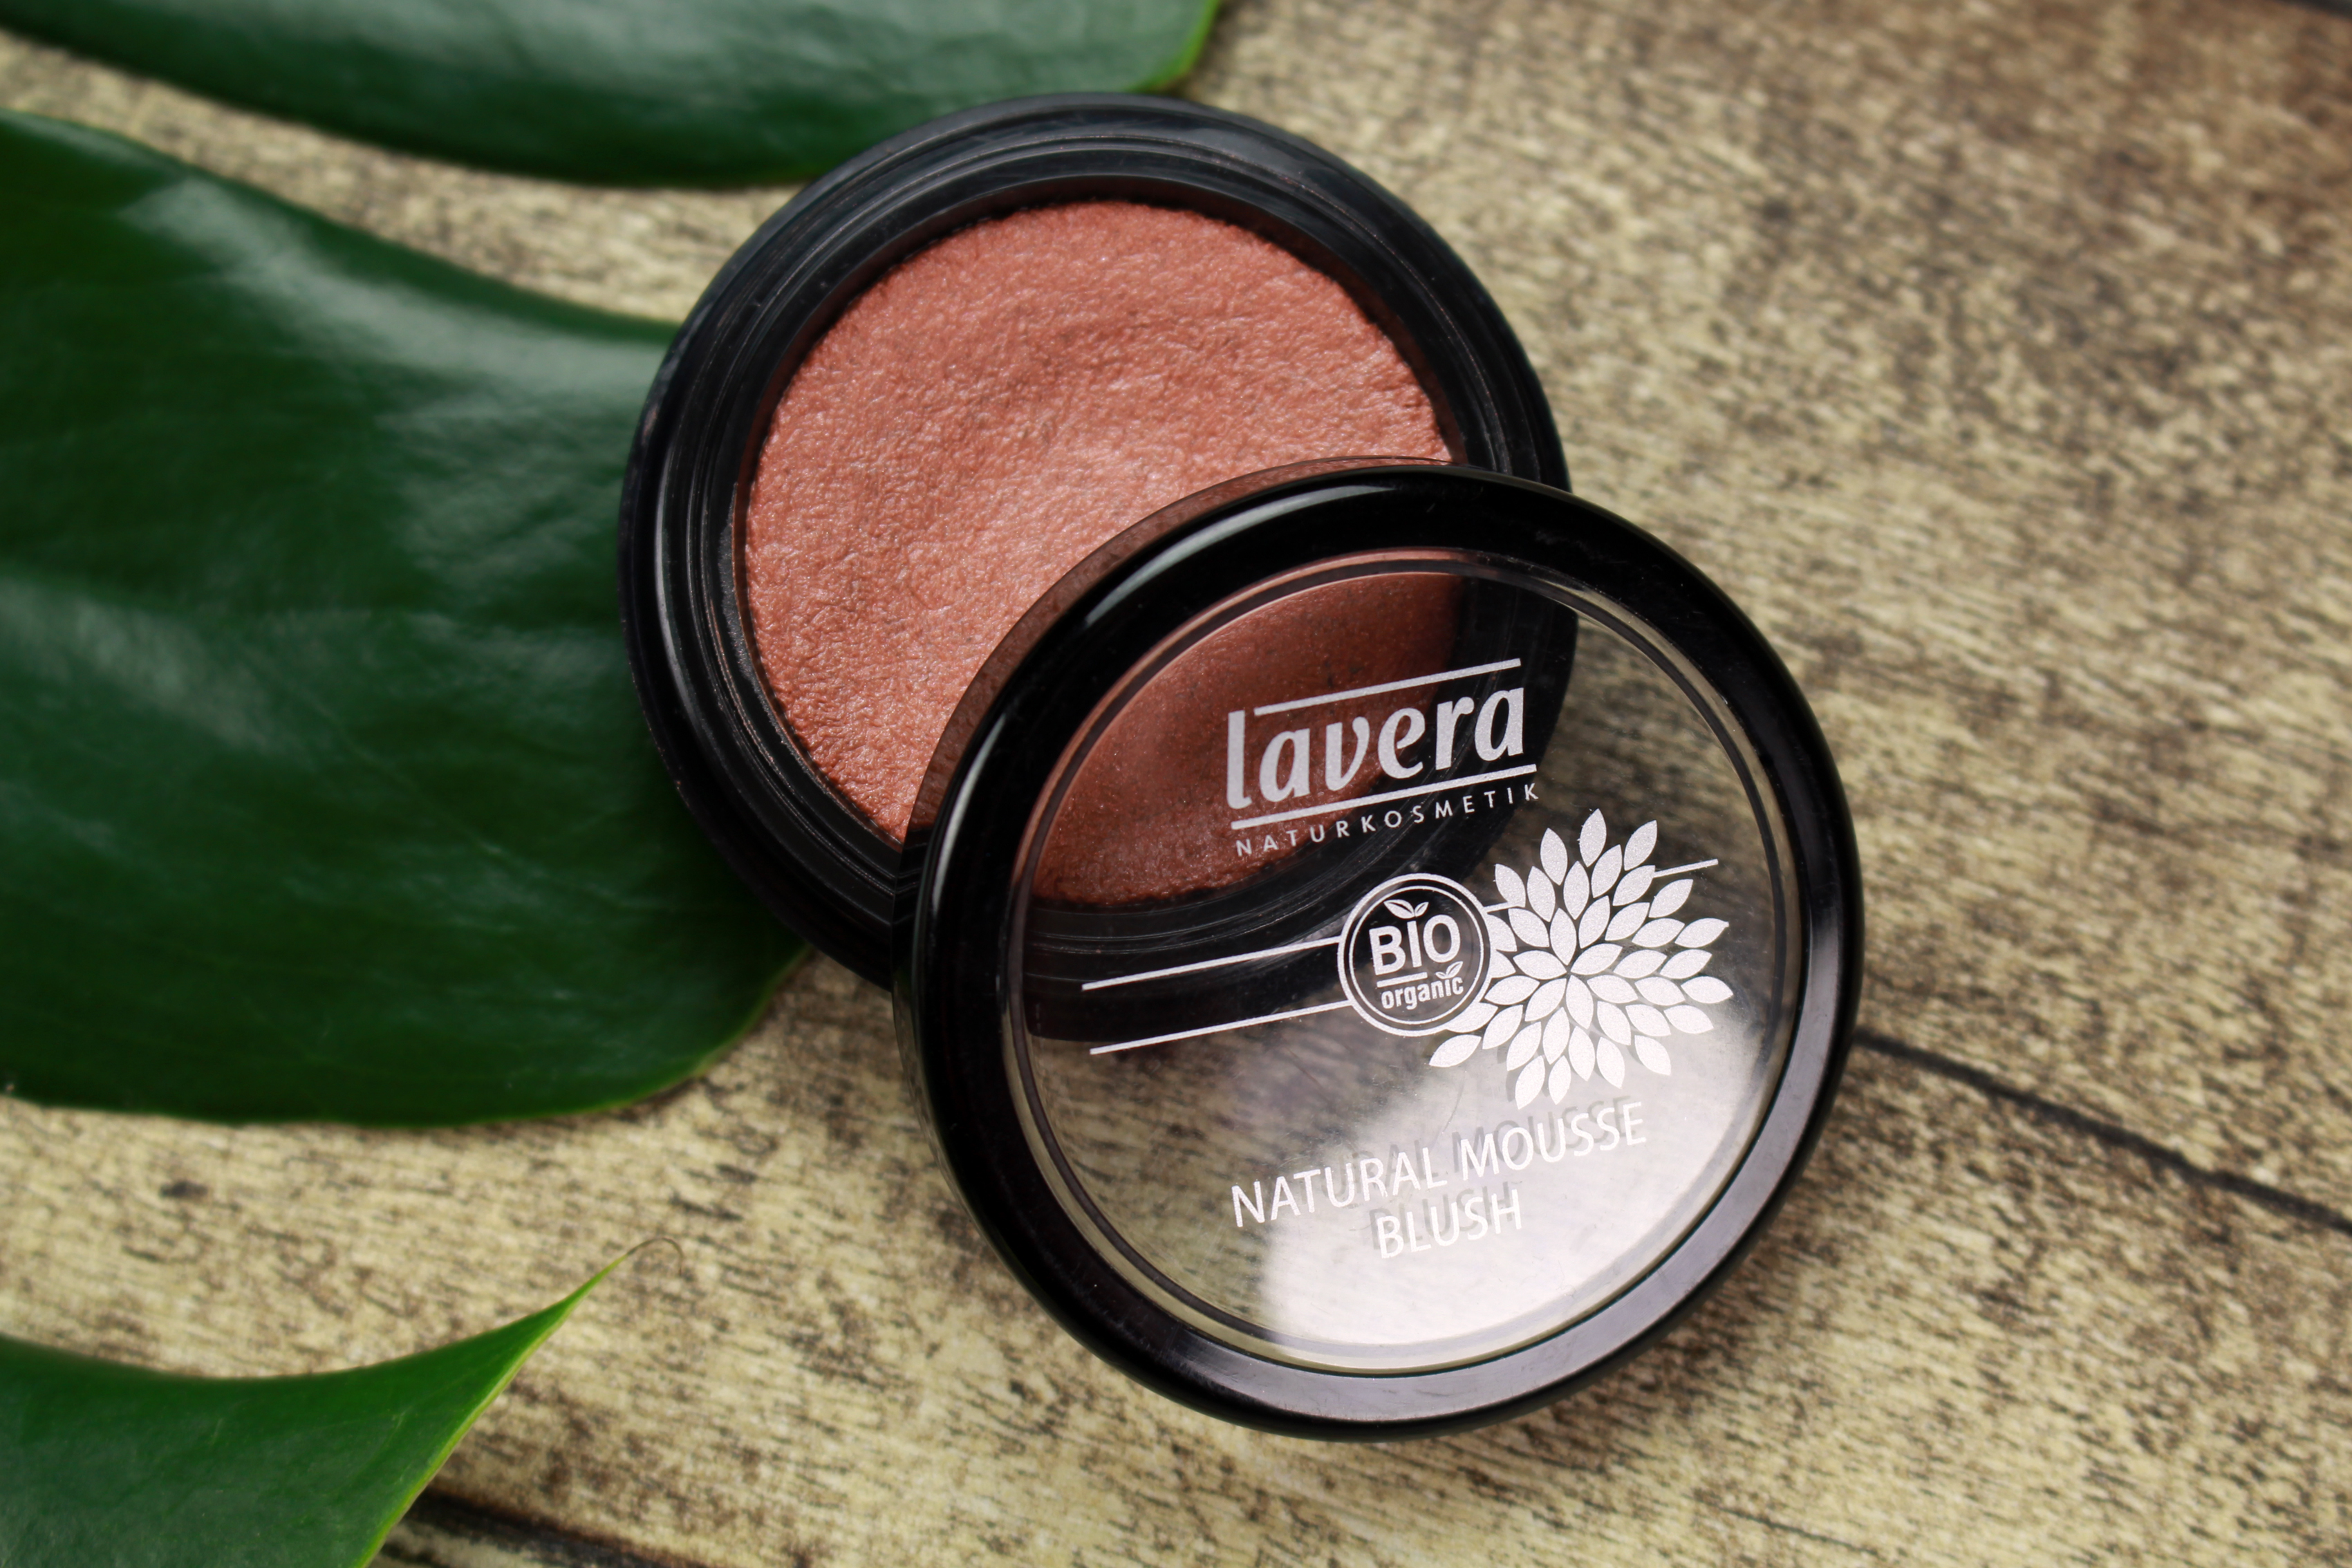 lavera-natural-mousse-blush-classic-nude-review